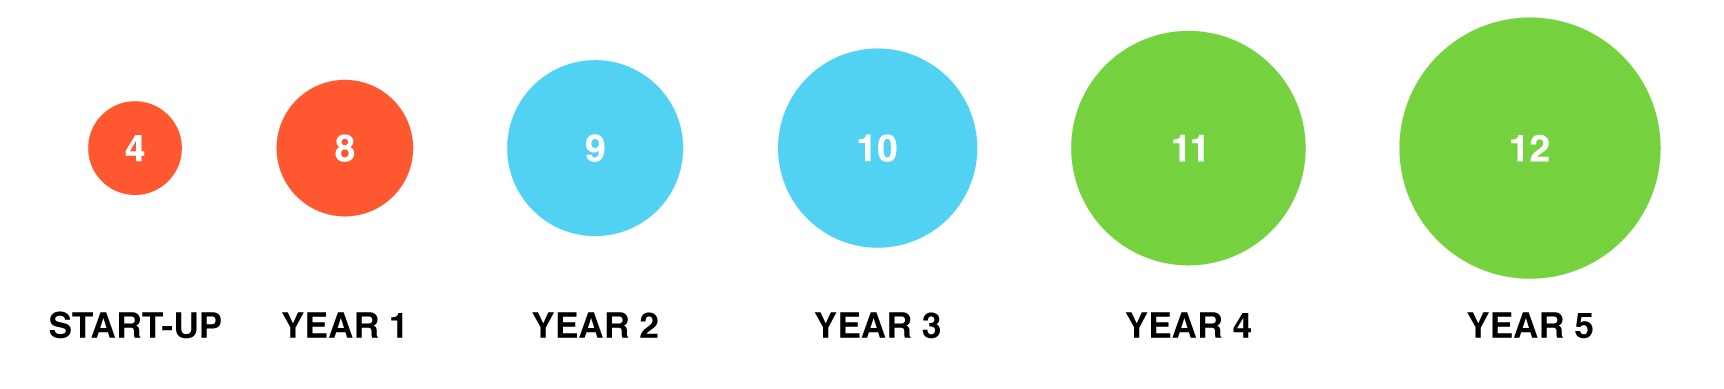 Annual number of education and training programmes at EartH